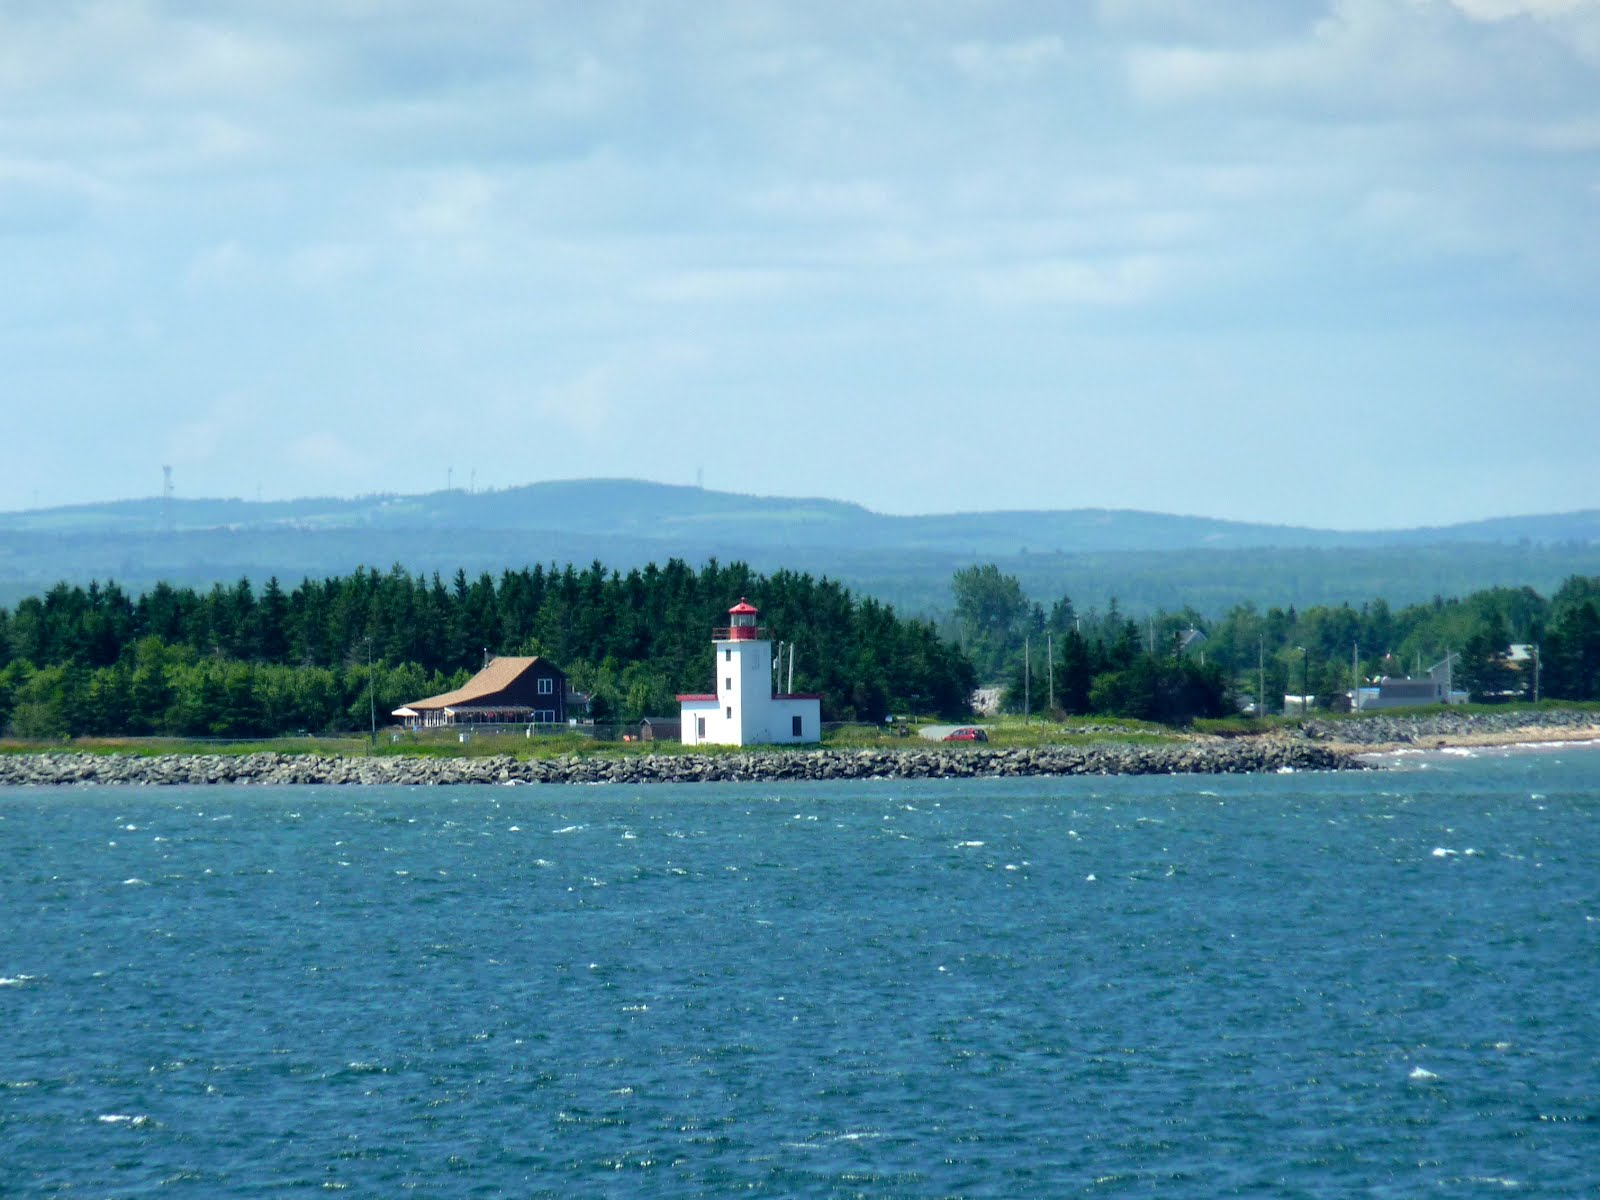 Travels In Our Airstream Prince Edward Island To Cape Breton